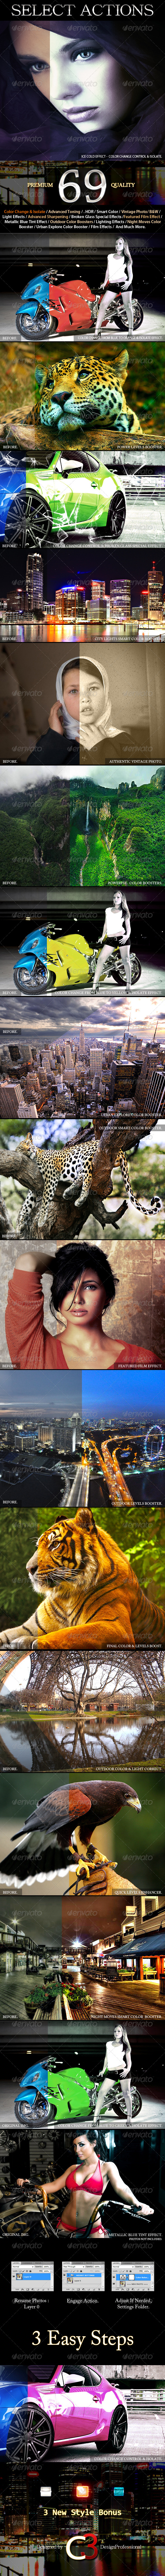 GraphicRiver 69 Best Selected Photo Actions 4458633